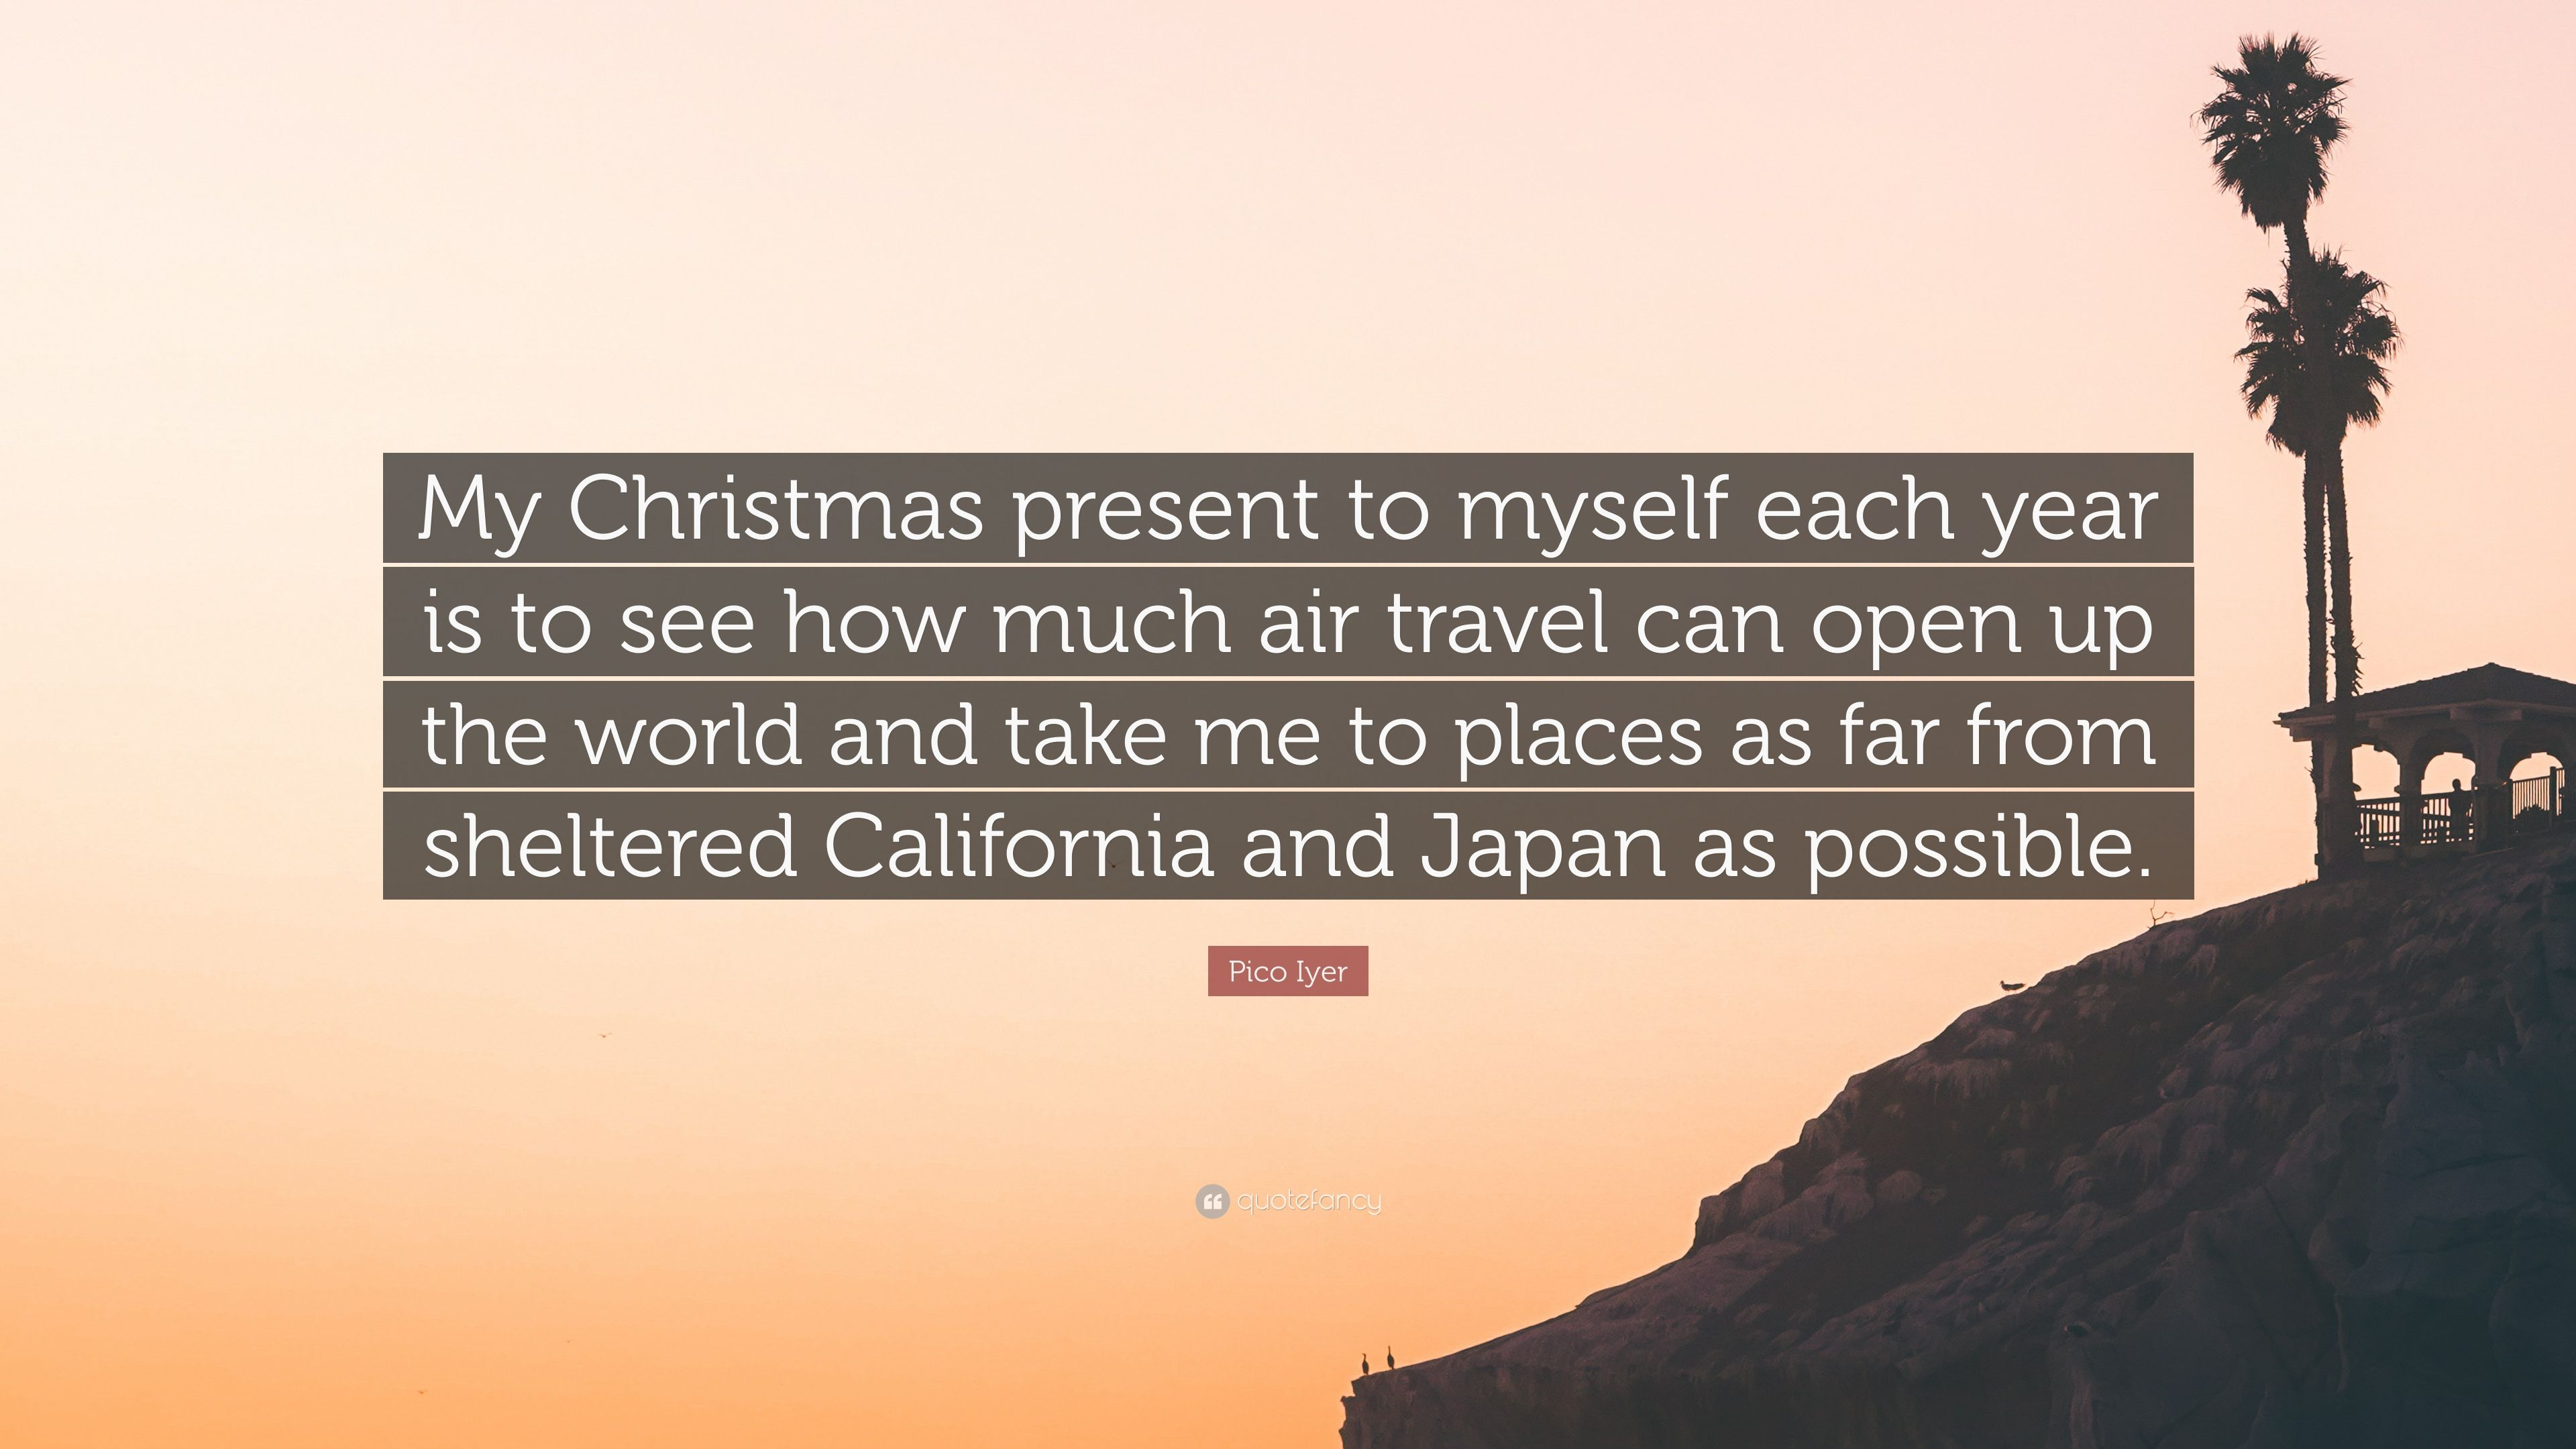 Christmas By Myself This Year.Pico Iyer Quote My Christmas Present To Myself Each Year